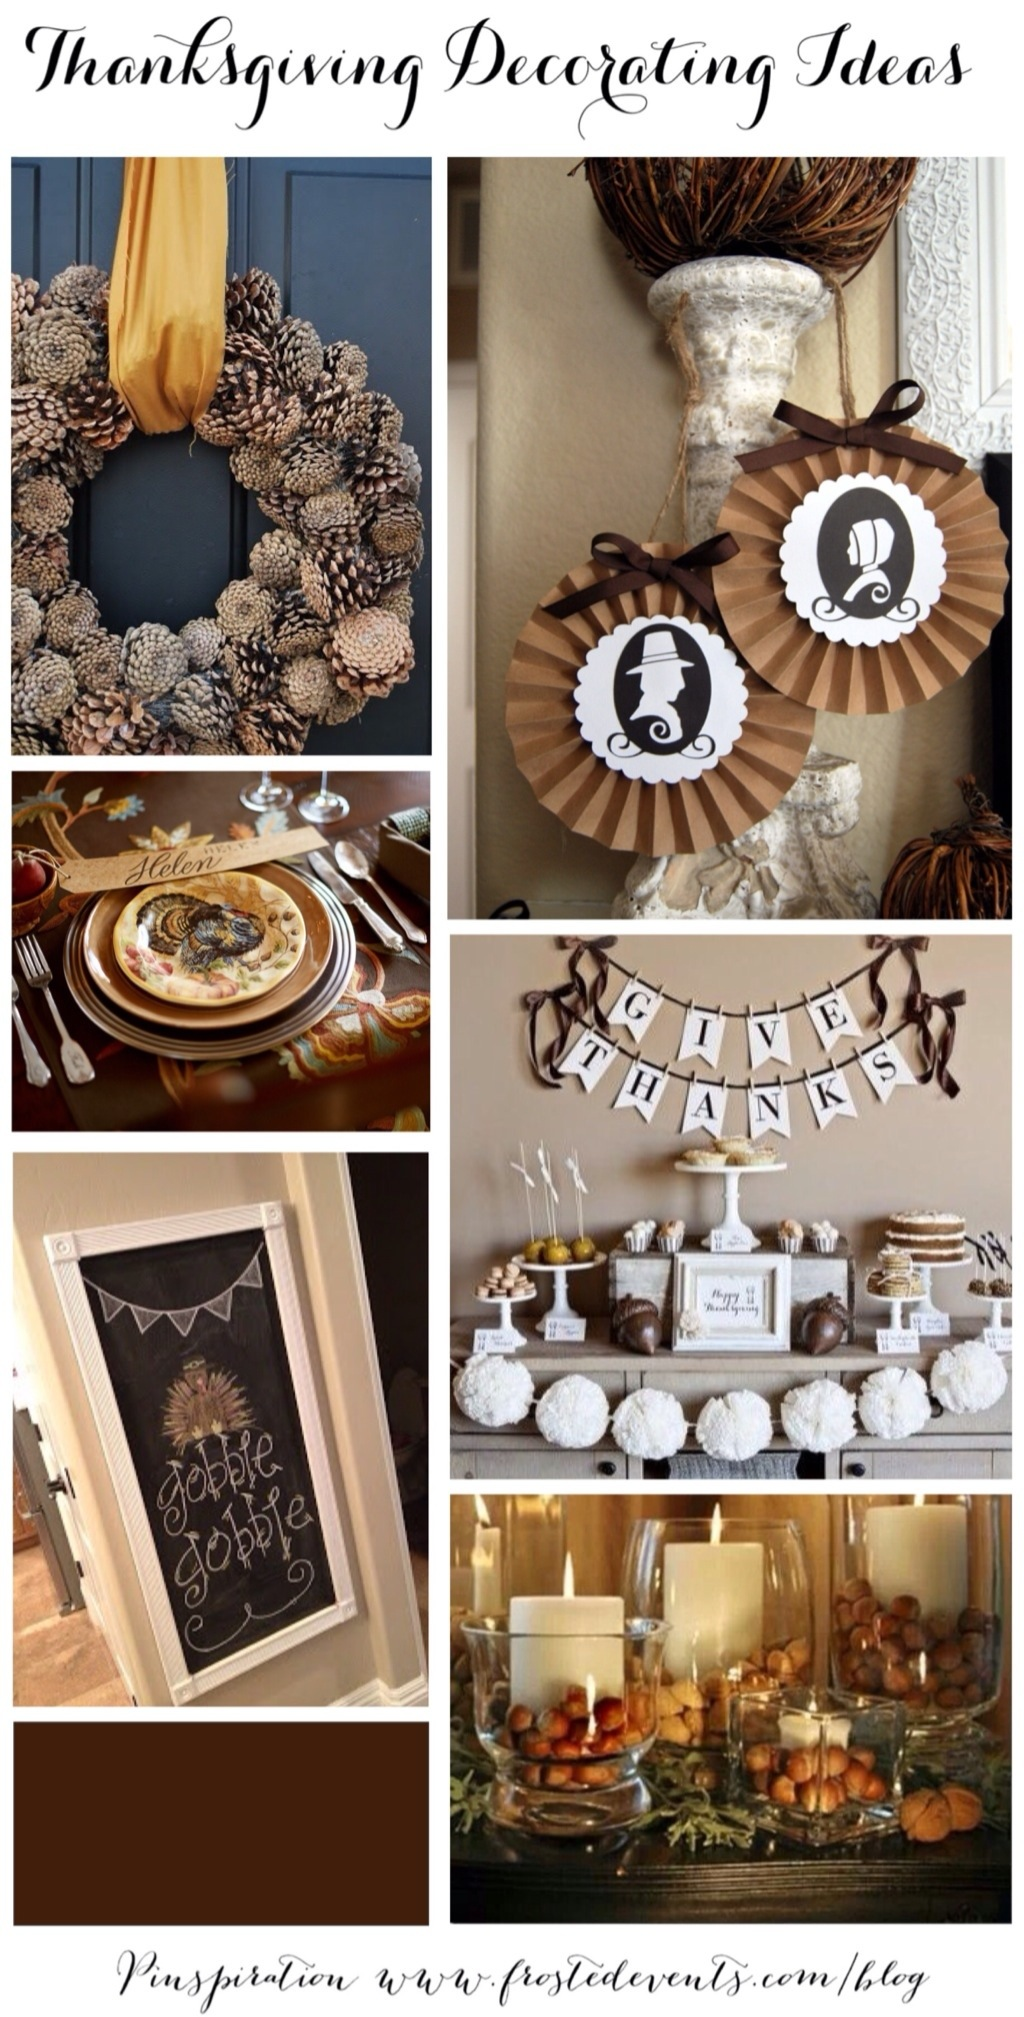 Thanksgiving decorating ideas, how to style your home for Thanksgiving. Holiday decor for setting a holiday table, beautiful door wreaths and classic fall decor  @frostedevents